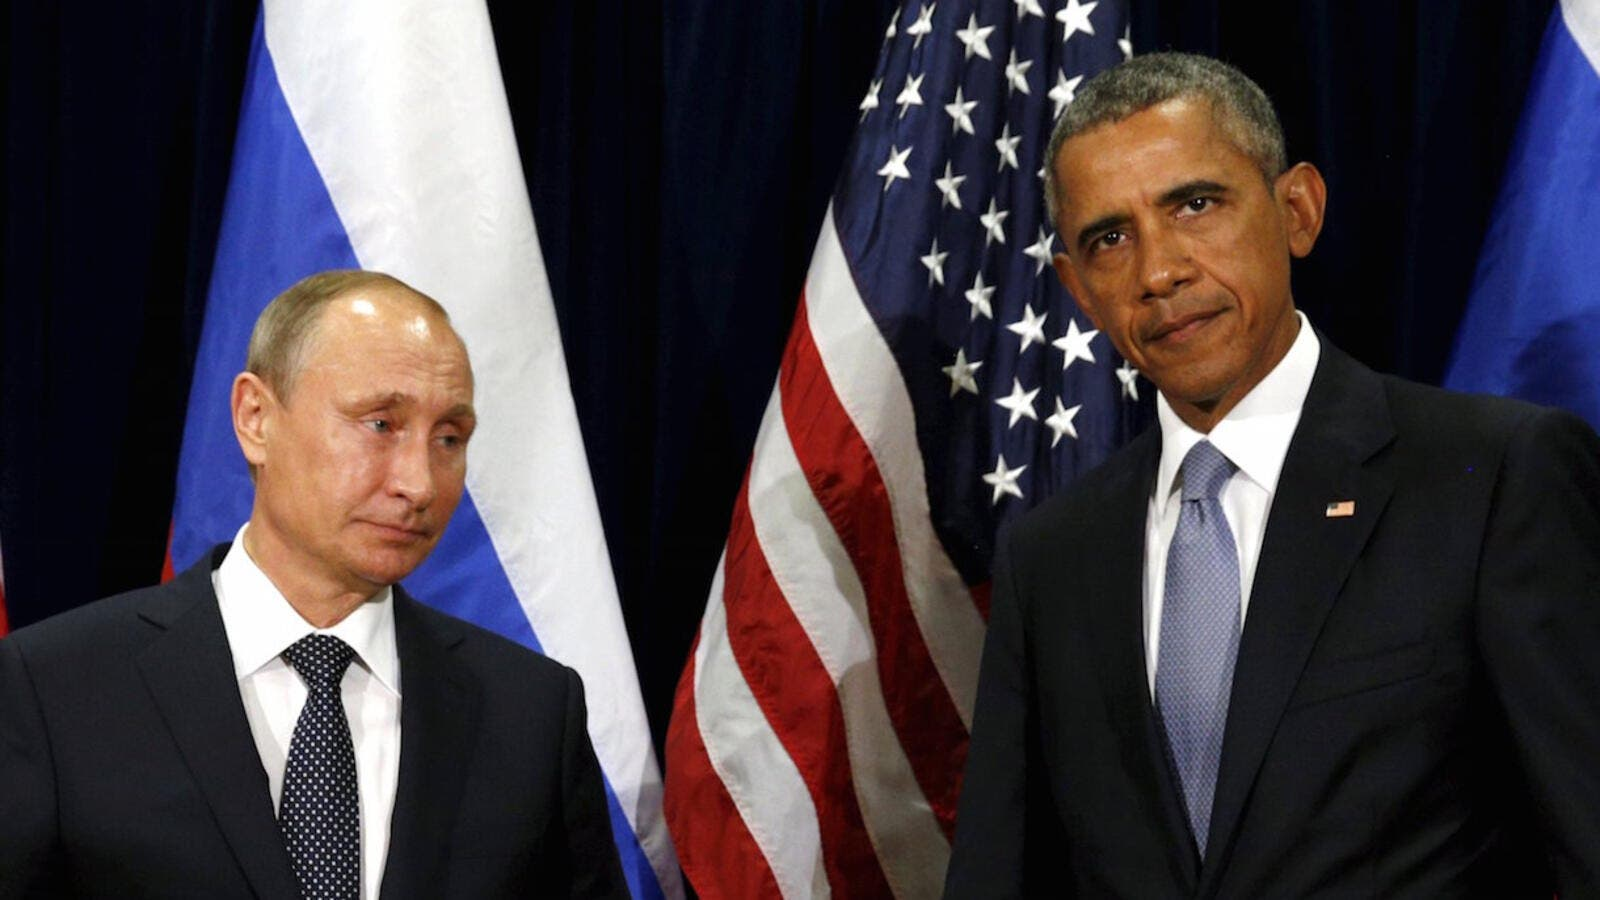 Putin and the West agree on more about Syria than usual after this G20, at least on paper.  (AFP/File)